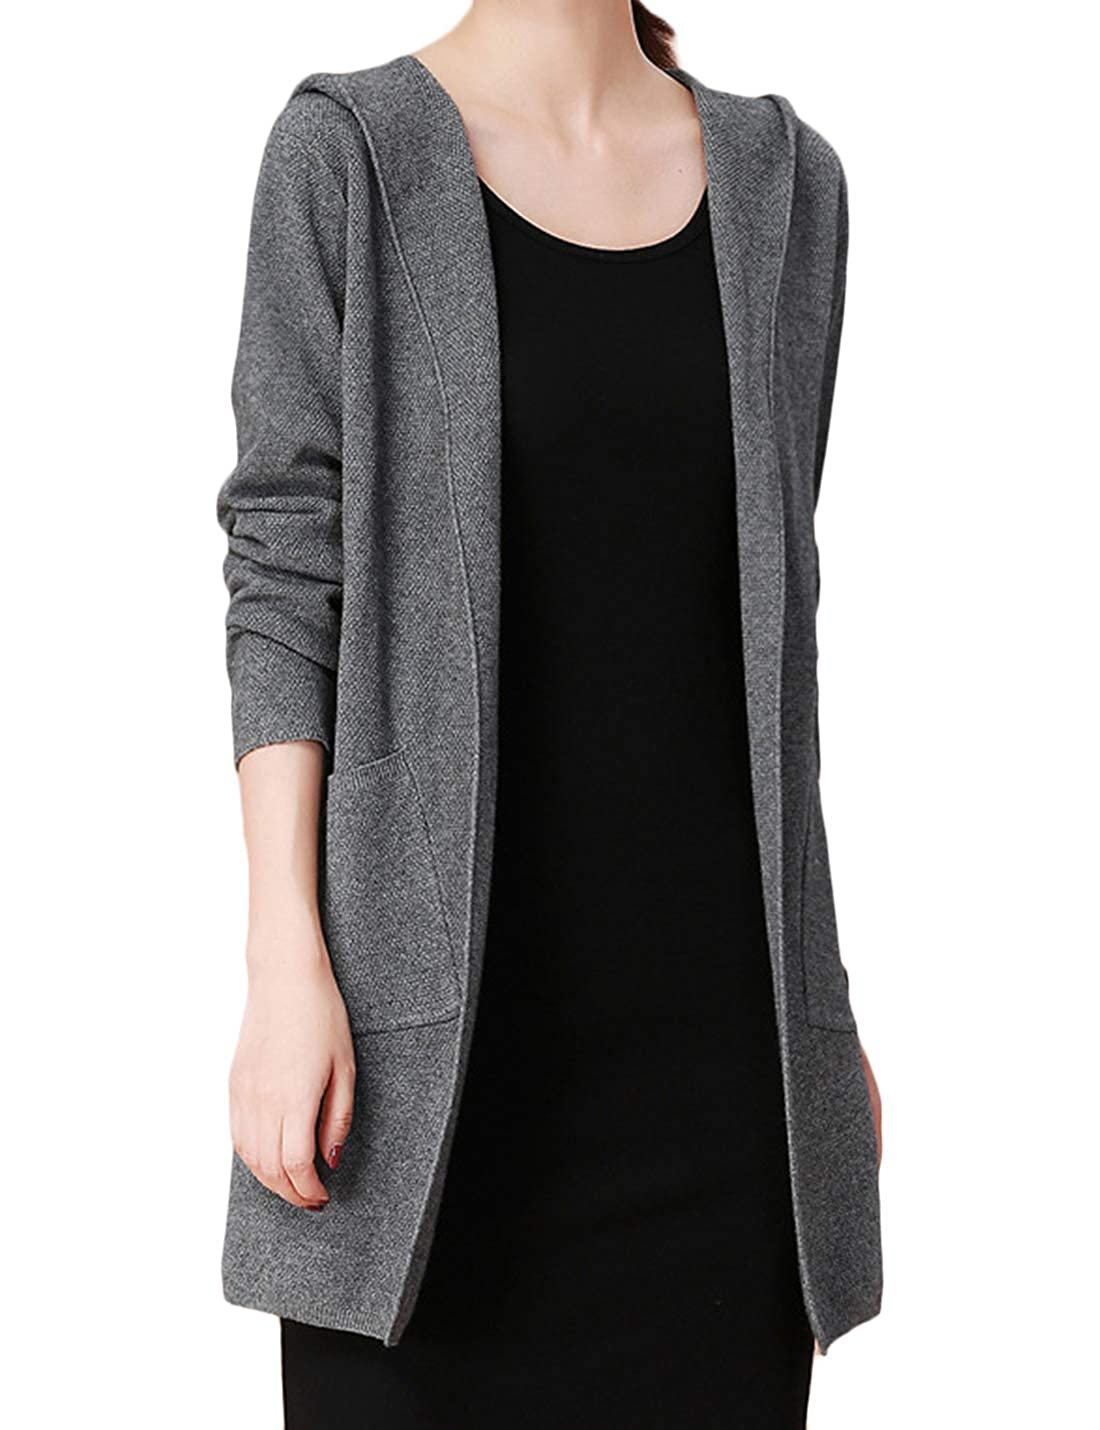 652a973c0 Lentta Womens Open Front Mid Length Hooded Knitted Cardigan Sweater ...